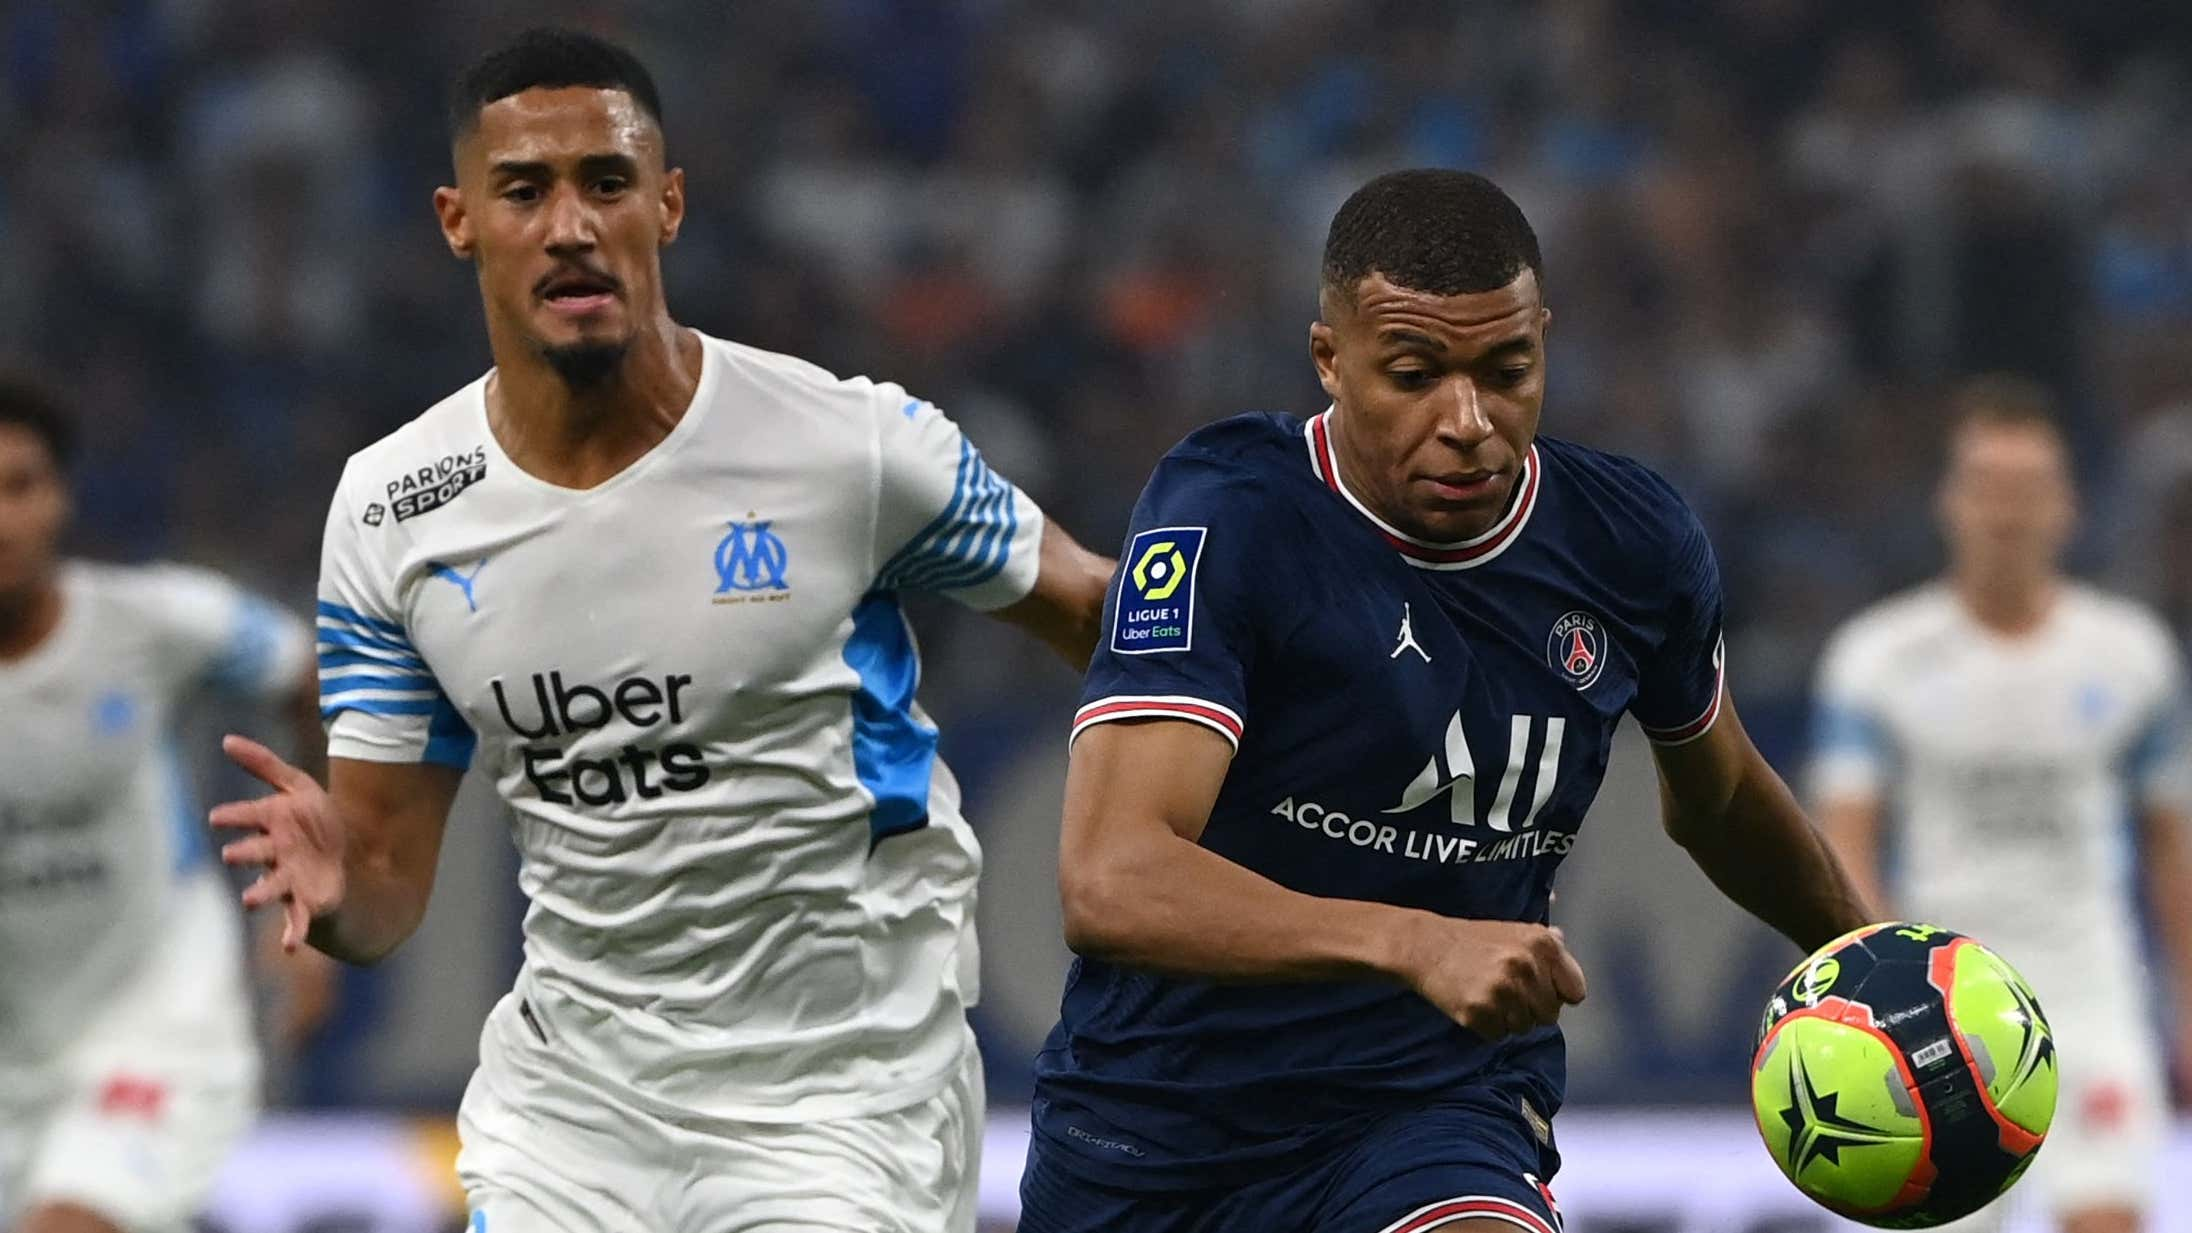 Bossing Messi and Mbappe proves Arsenal right over Saliba - but what happens next? | Goal.com